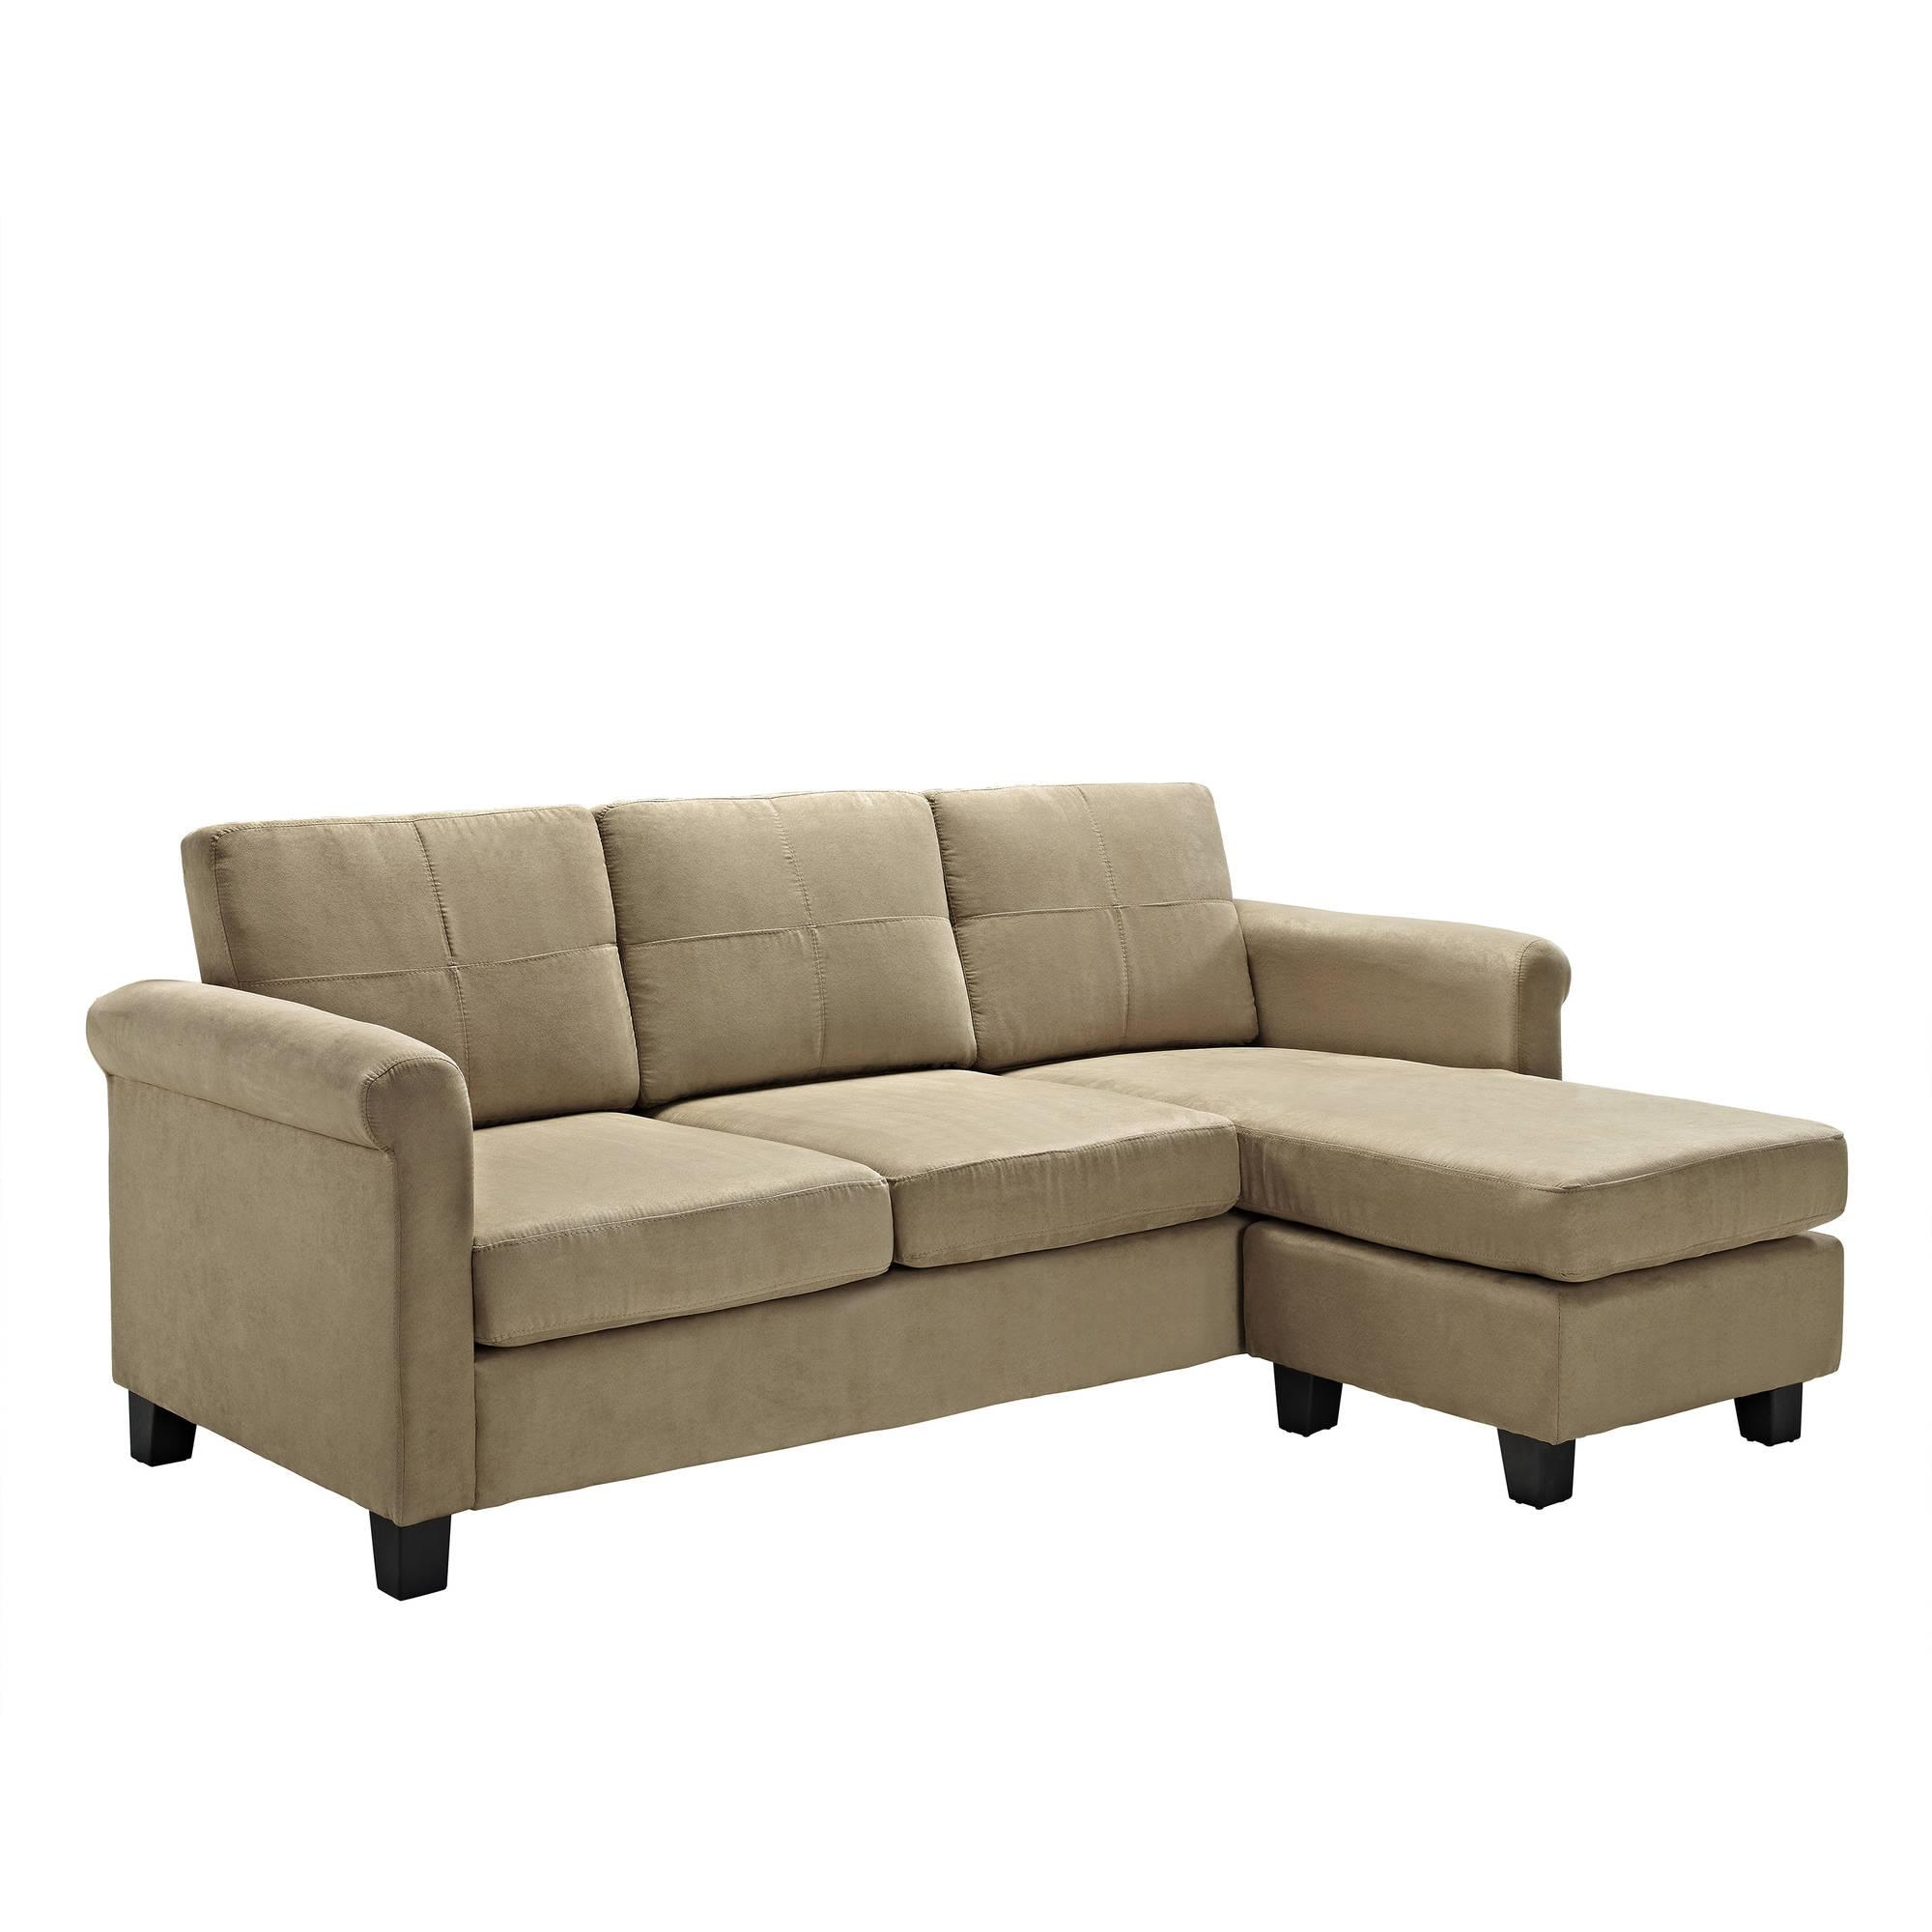 Dorel Living Small Spaces Configurable Sectional Sofa, Multiple Pertaining To Sectional Small Spaces (View 9 of 20)